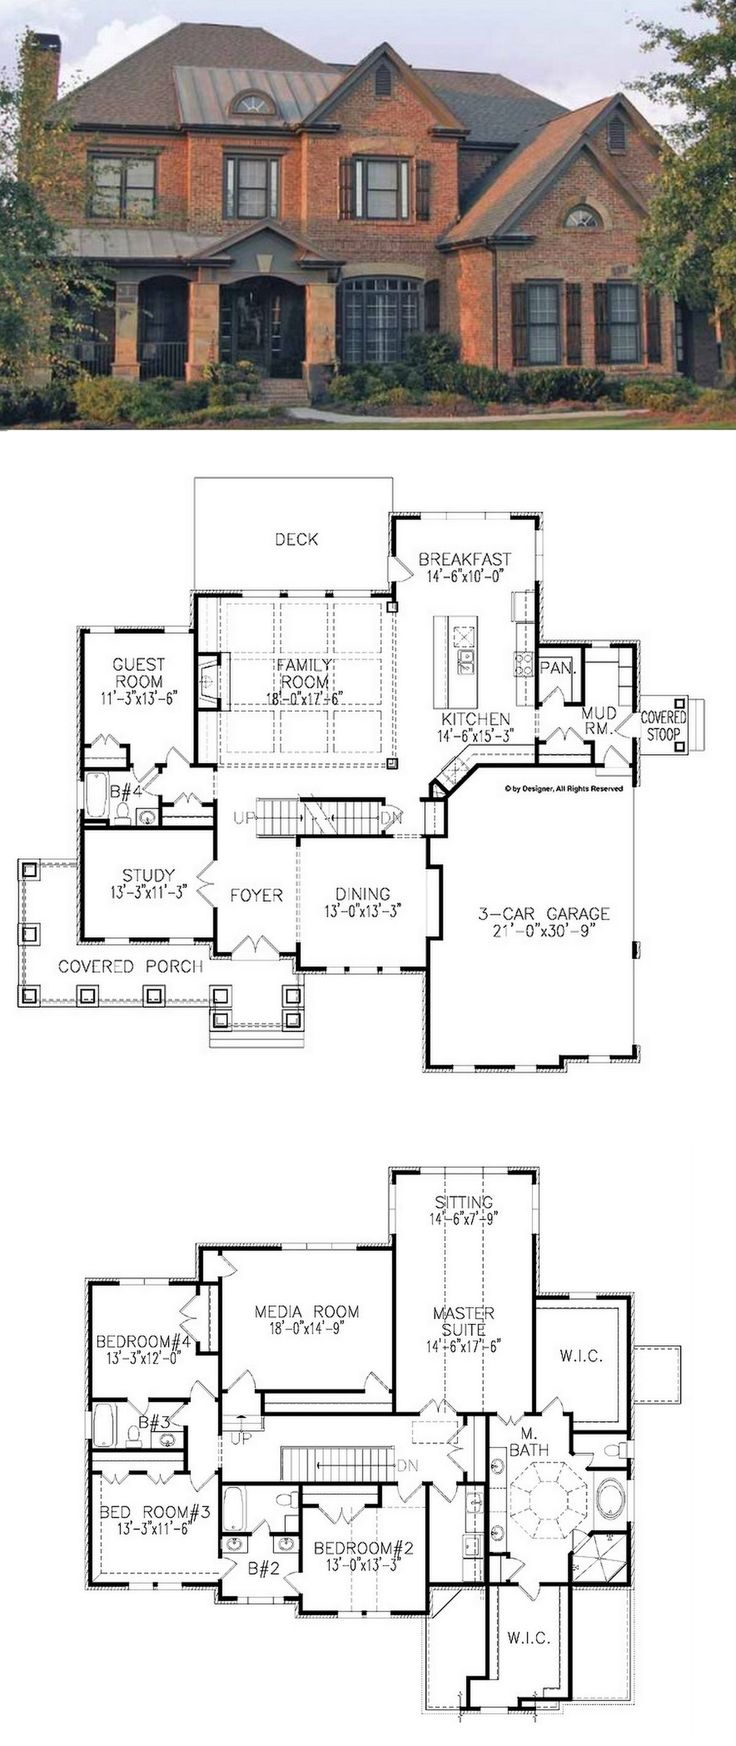 5 Bedroom House Plans 1 Story: Pin By Martha Kenworthy On Home Ideas